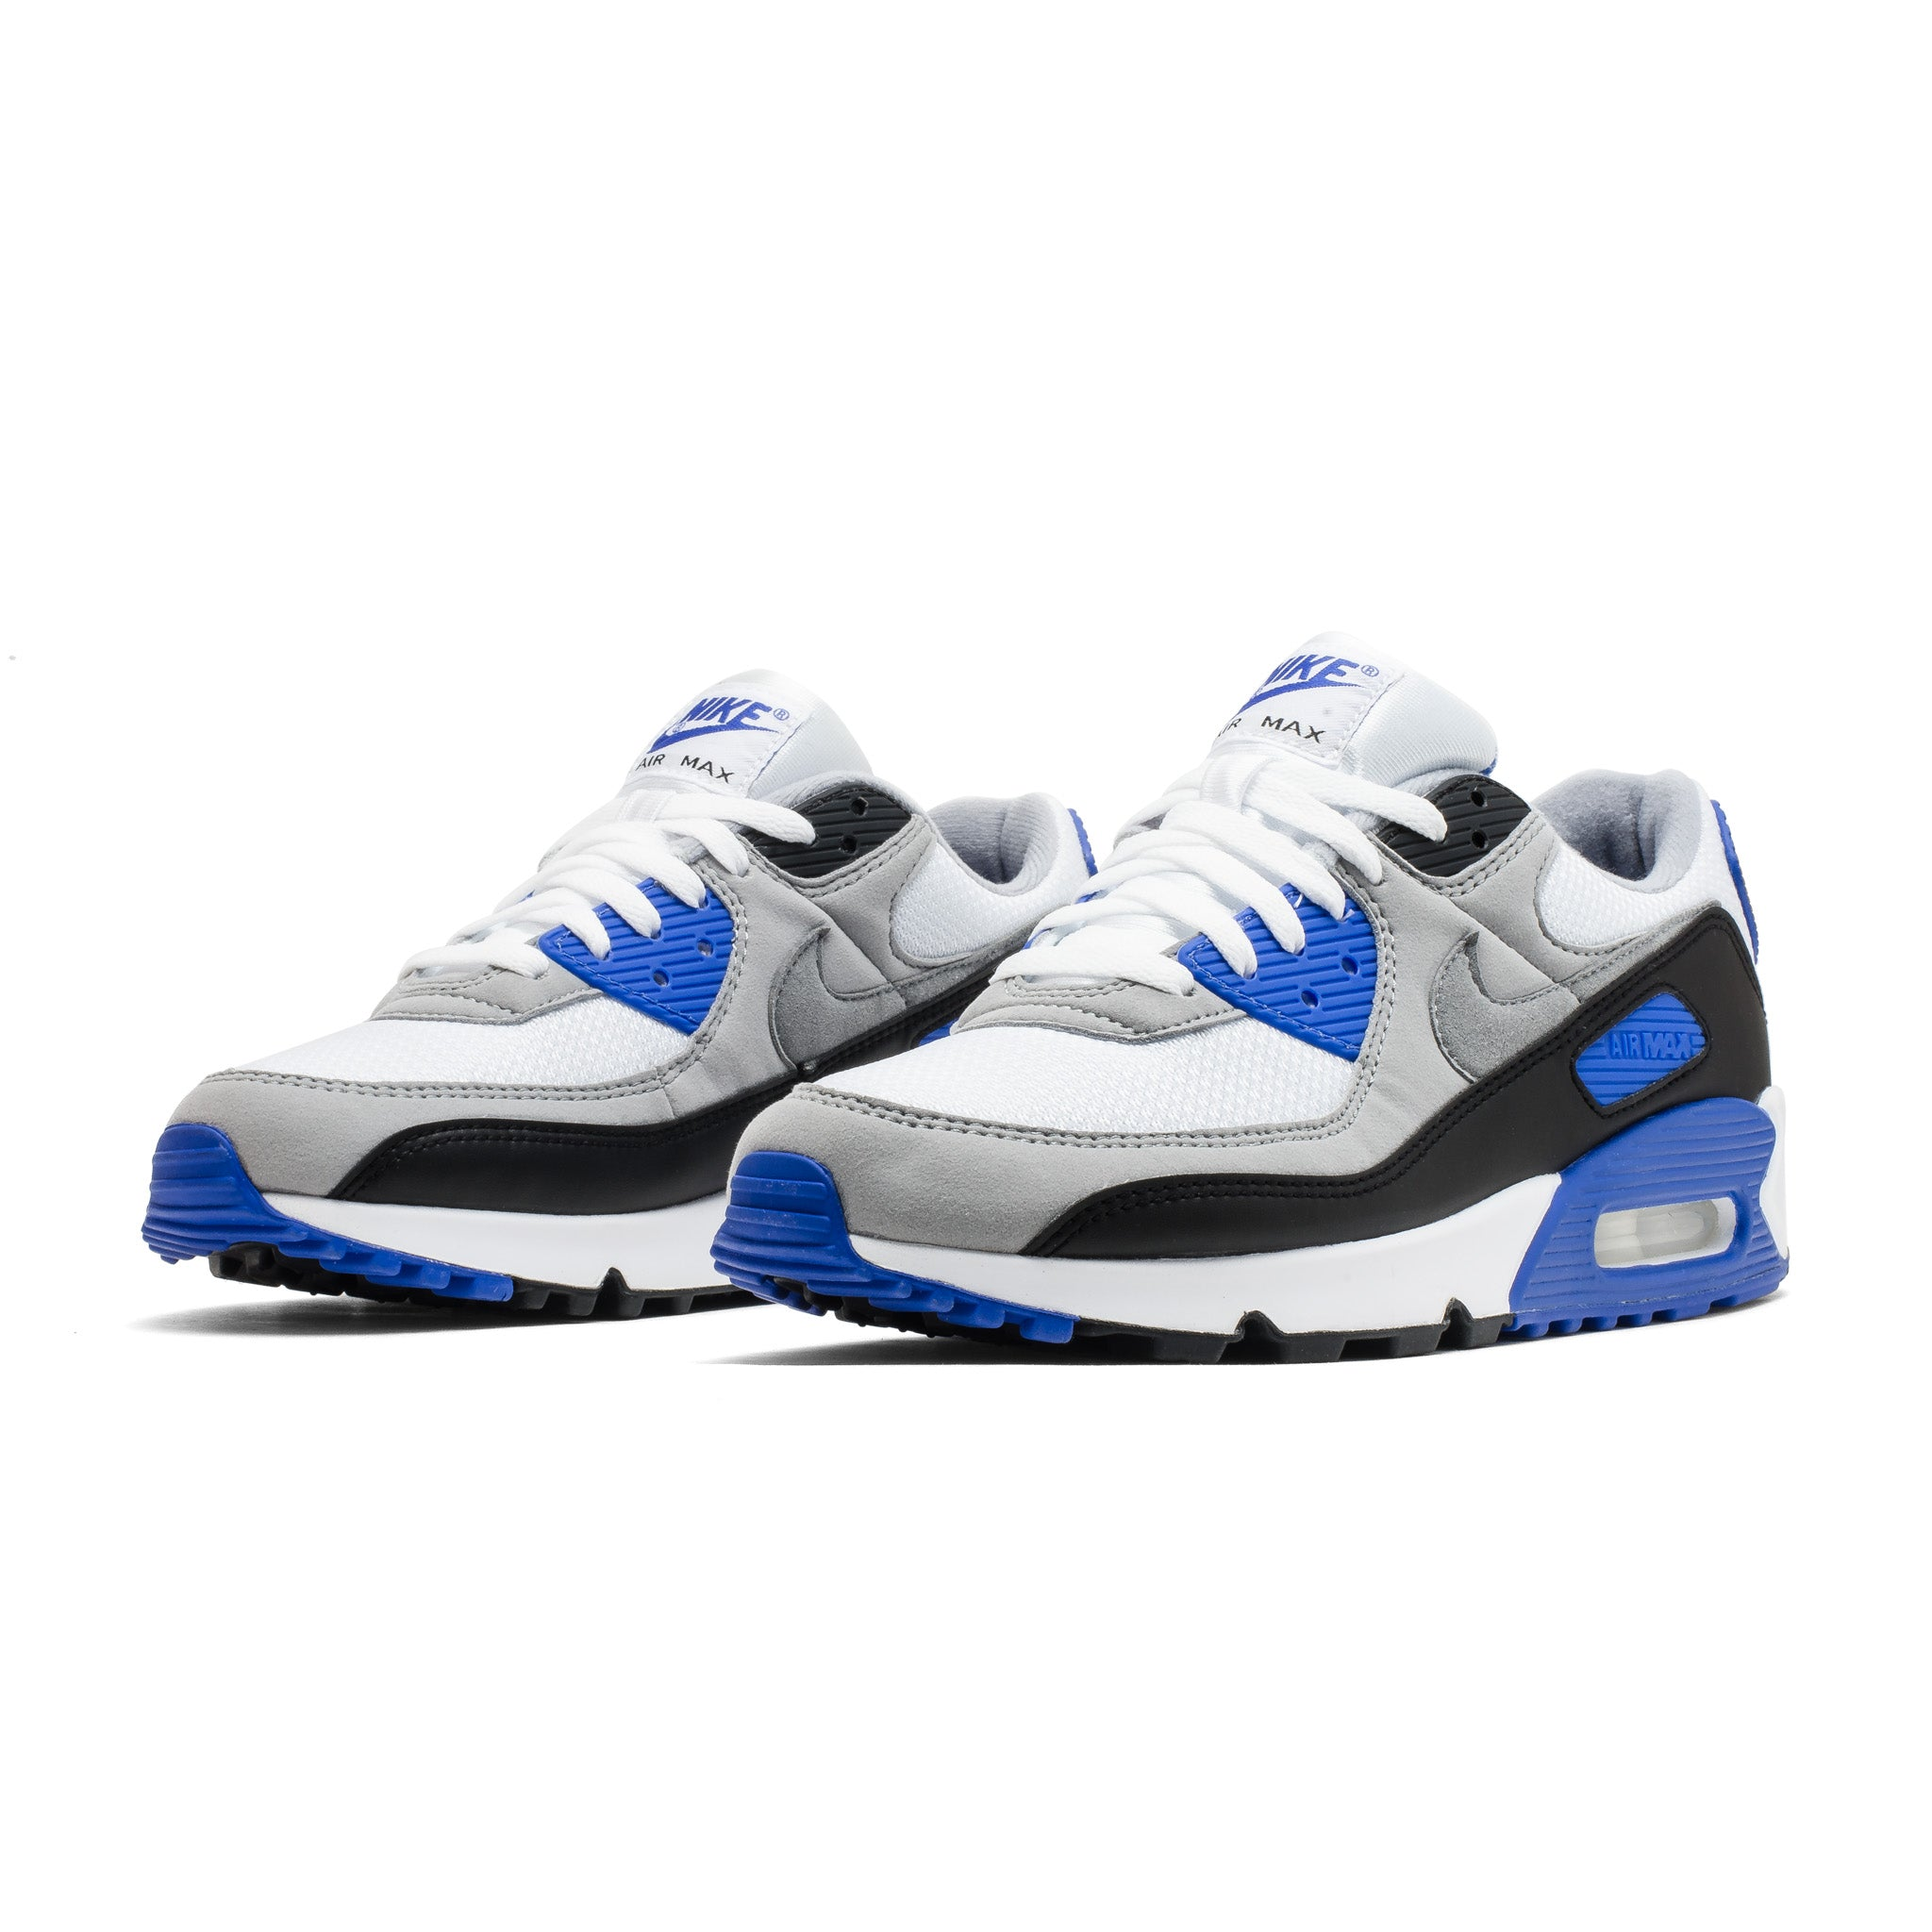 Air Max 90 CD0881-102 Blue